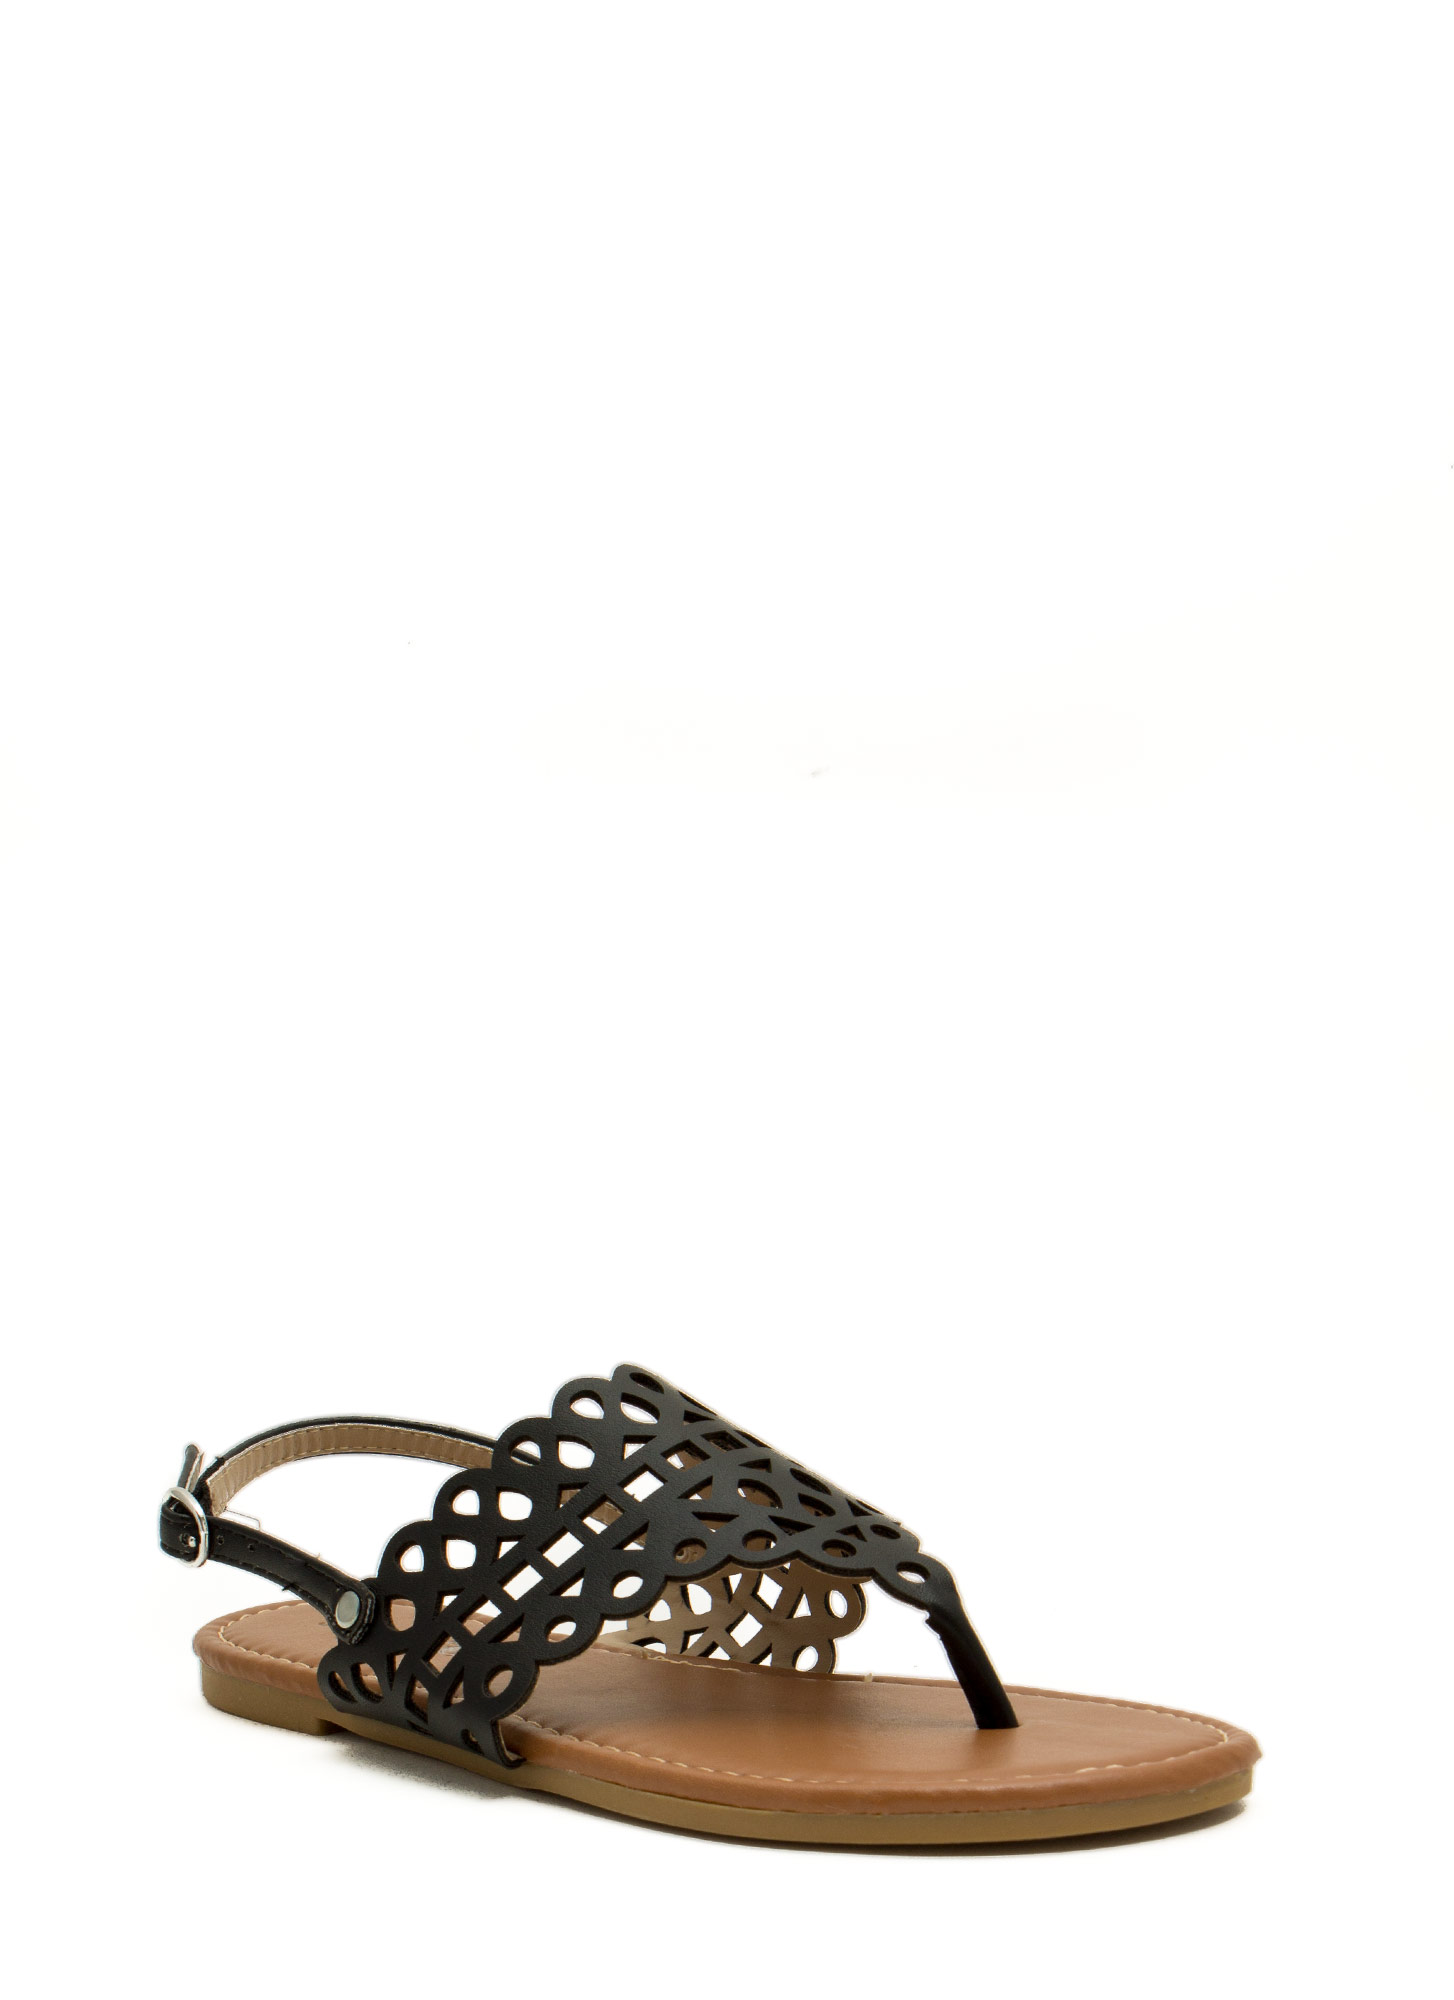 Made The Cut-Out Thong Sandals BLACK